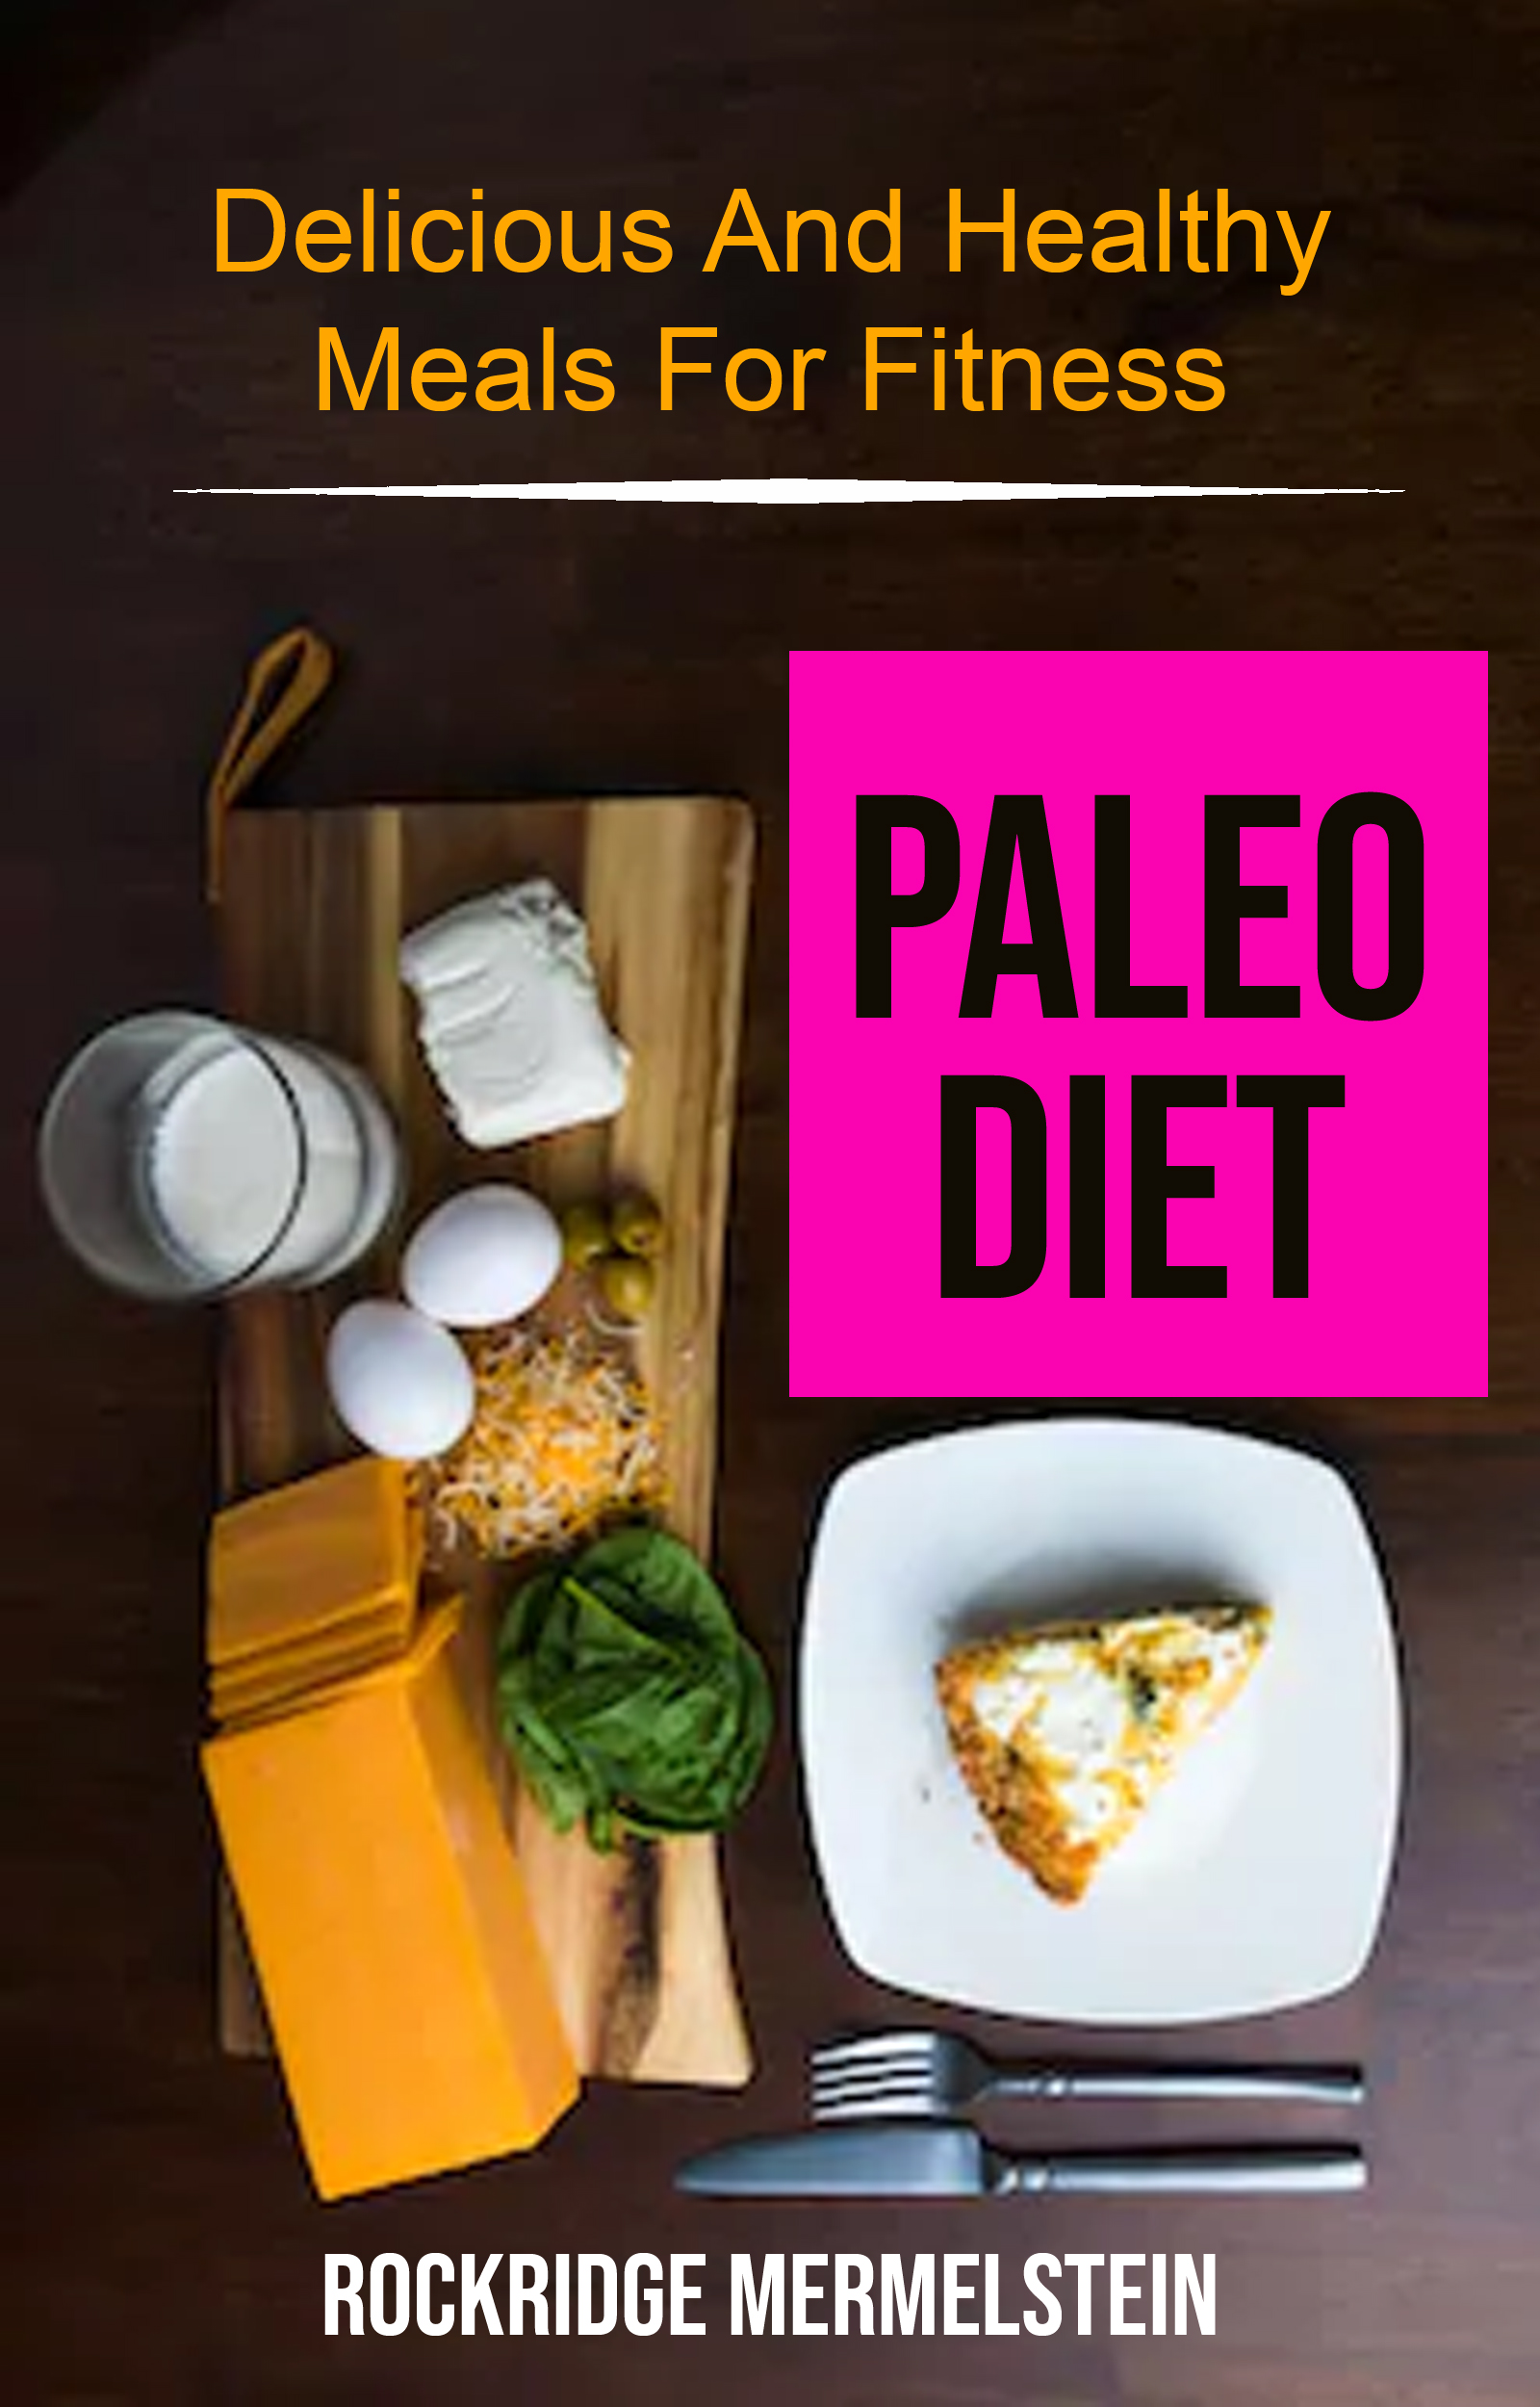 Paleo diet: delicious and healthy meals for fitness